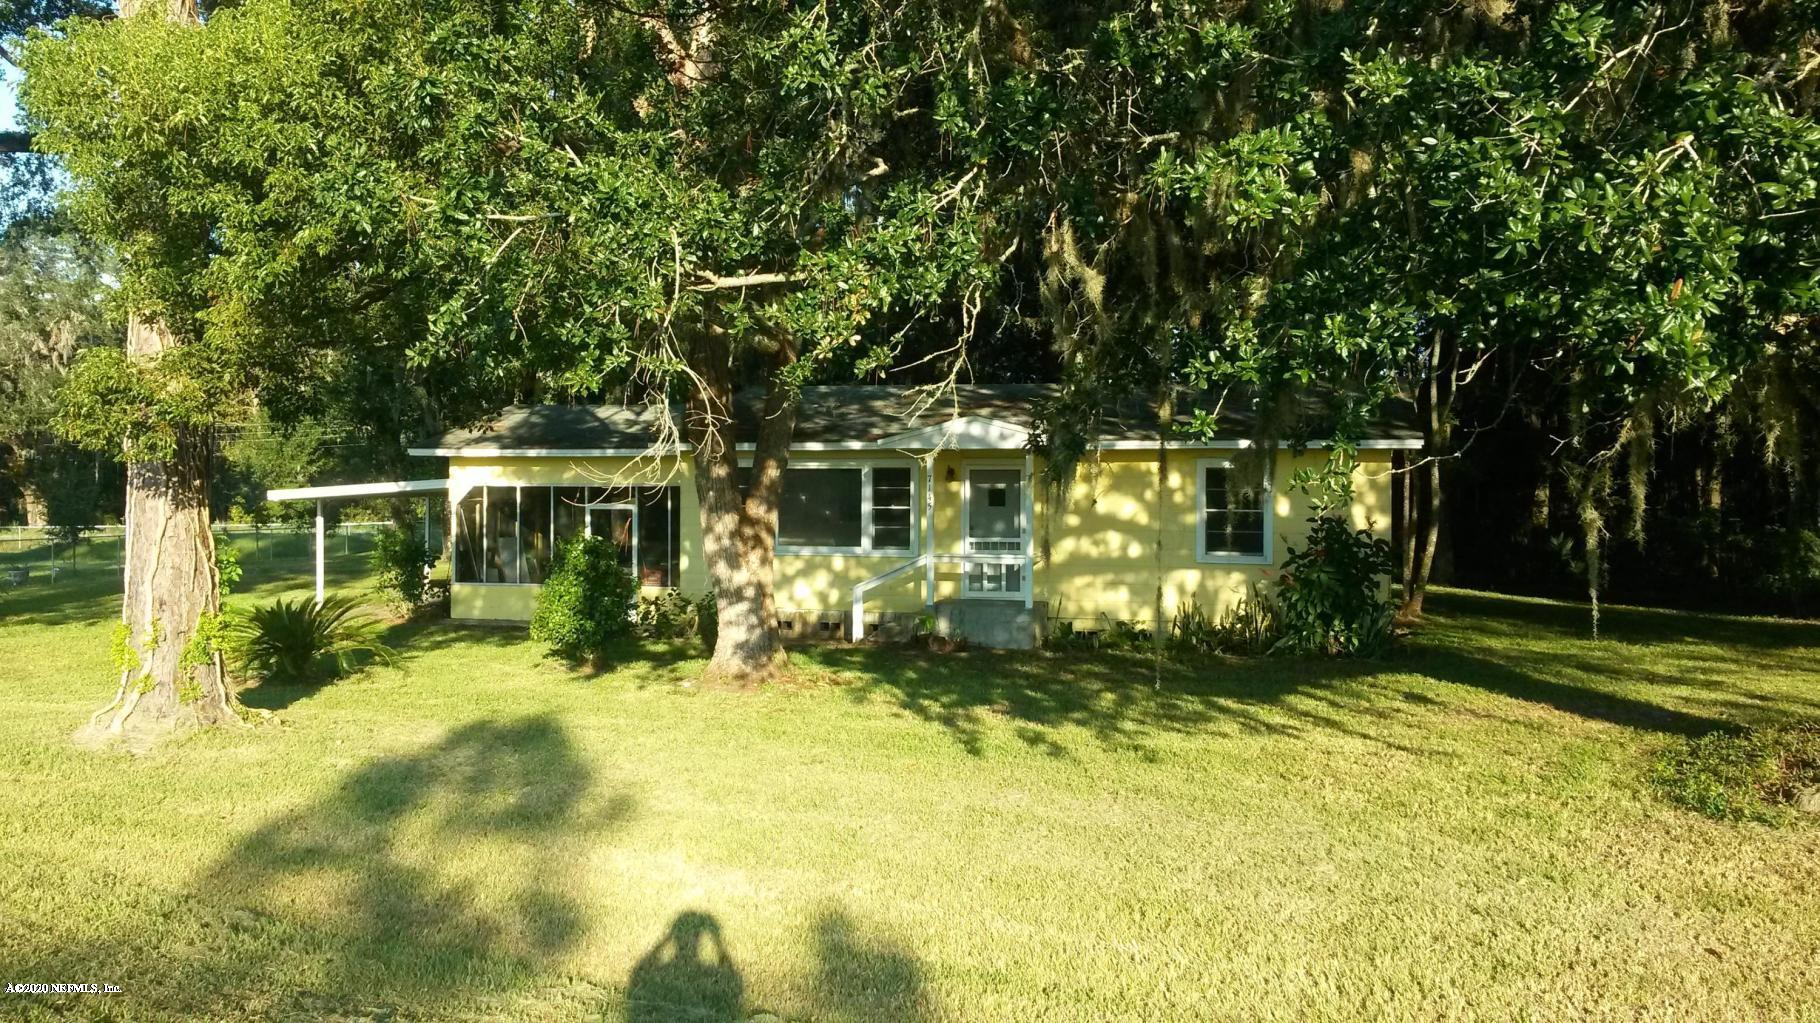 7145 STATE RD 207, ELKTON, FLORIDA 32033, 2 Bedrooms Bedrooms, ,1 BathroomBathrooms,Residential,For sale,STATE RD 207,1043312